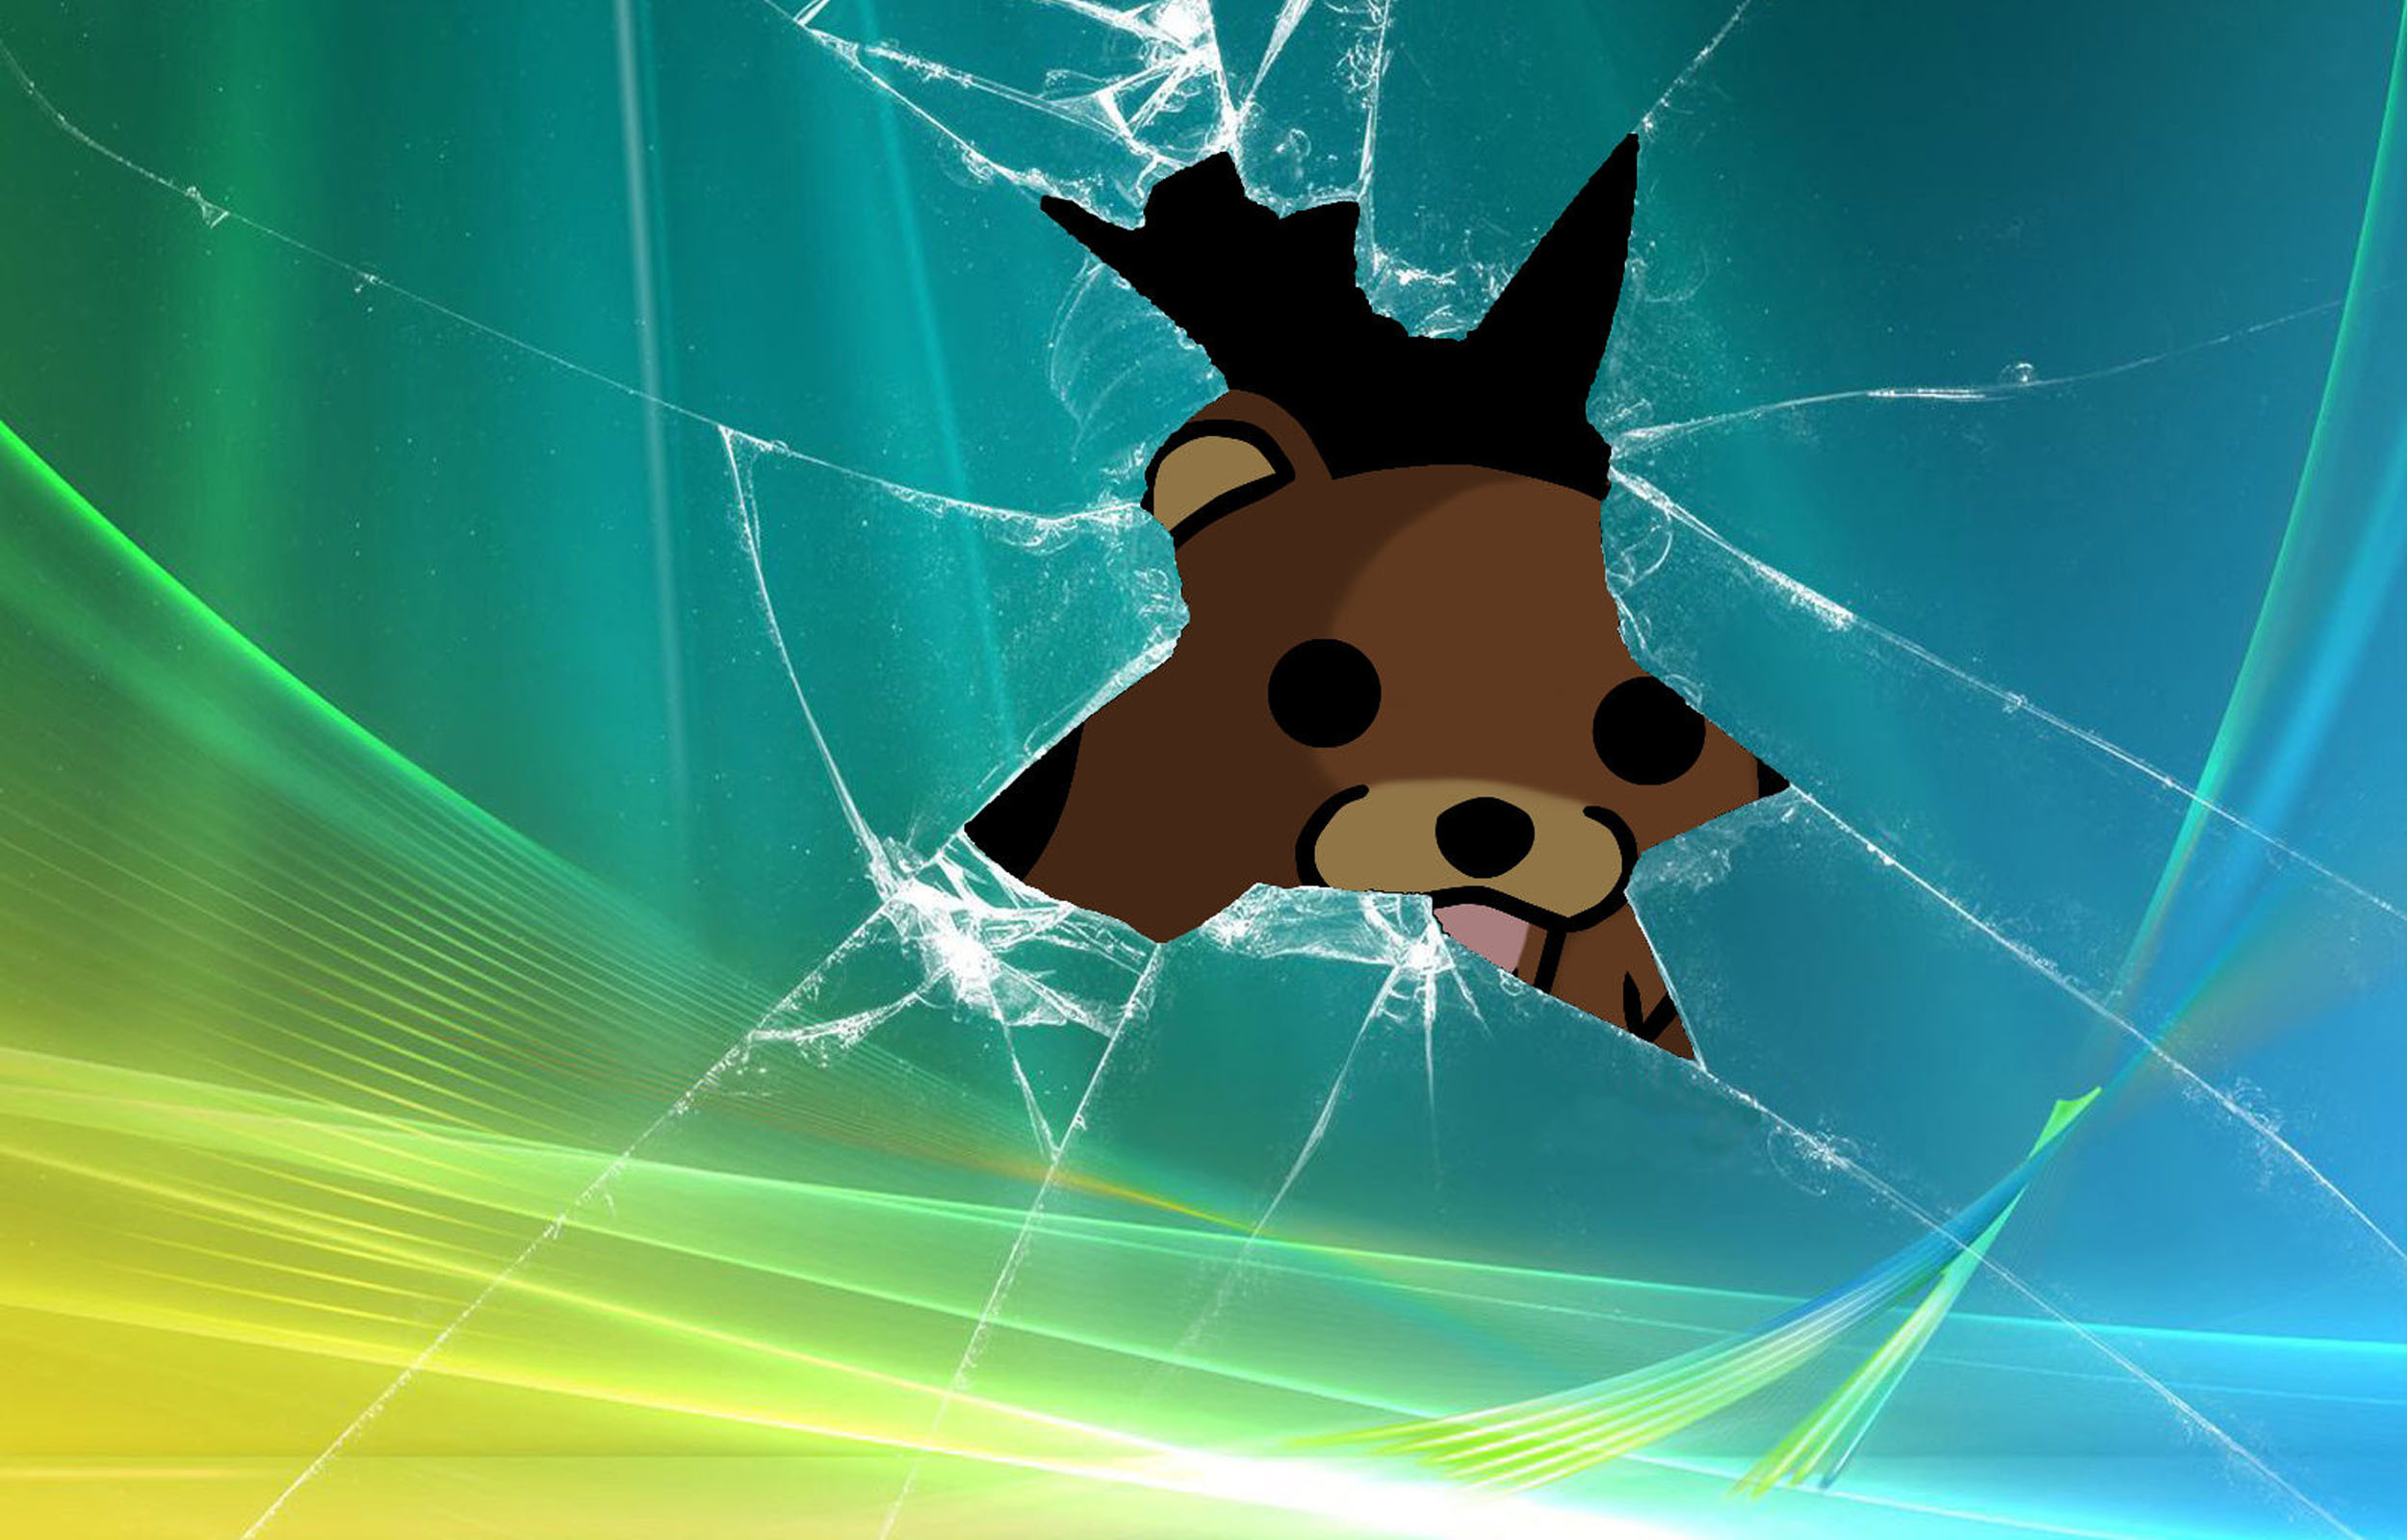 Pedobear fun HD Wallpaper